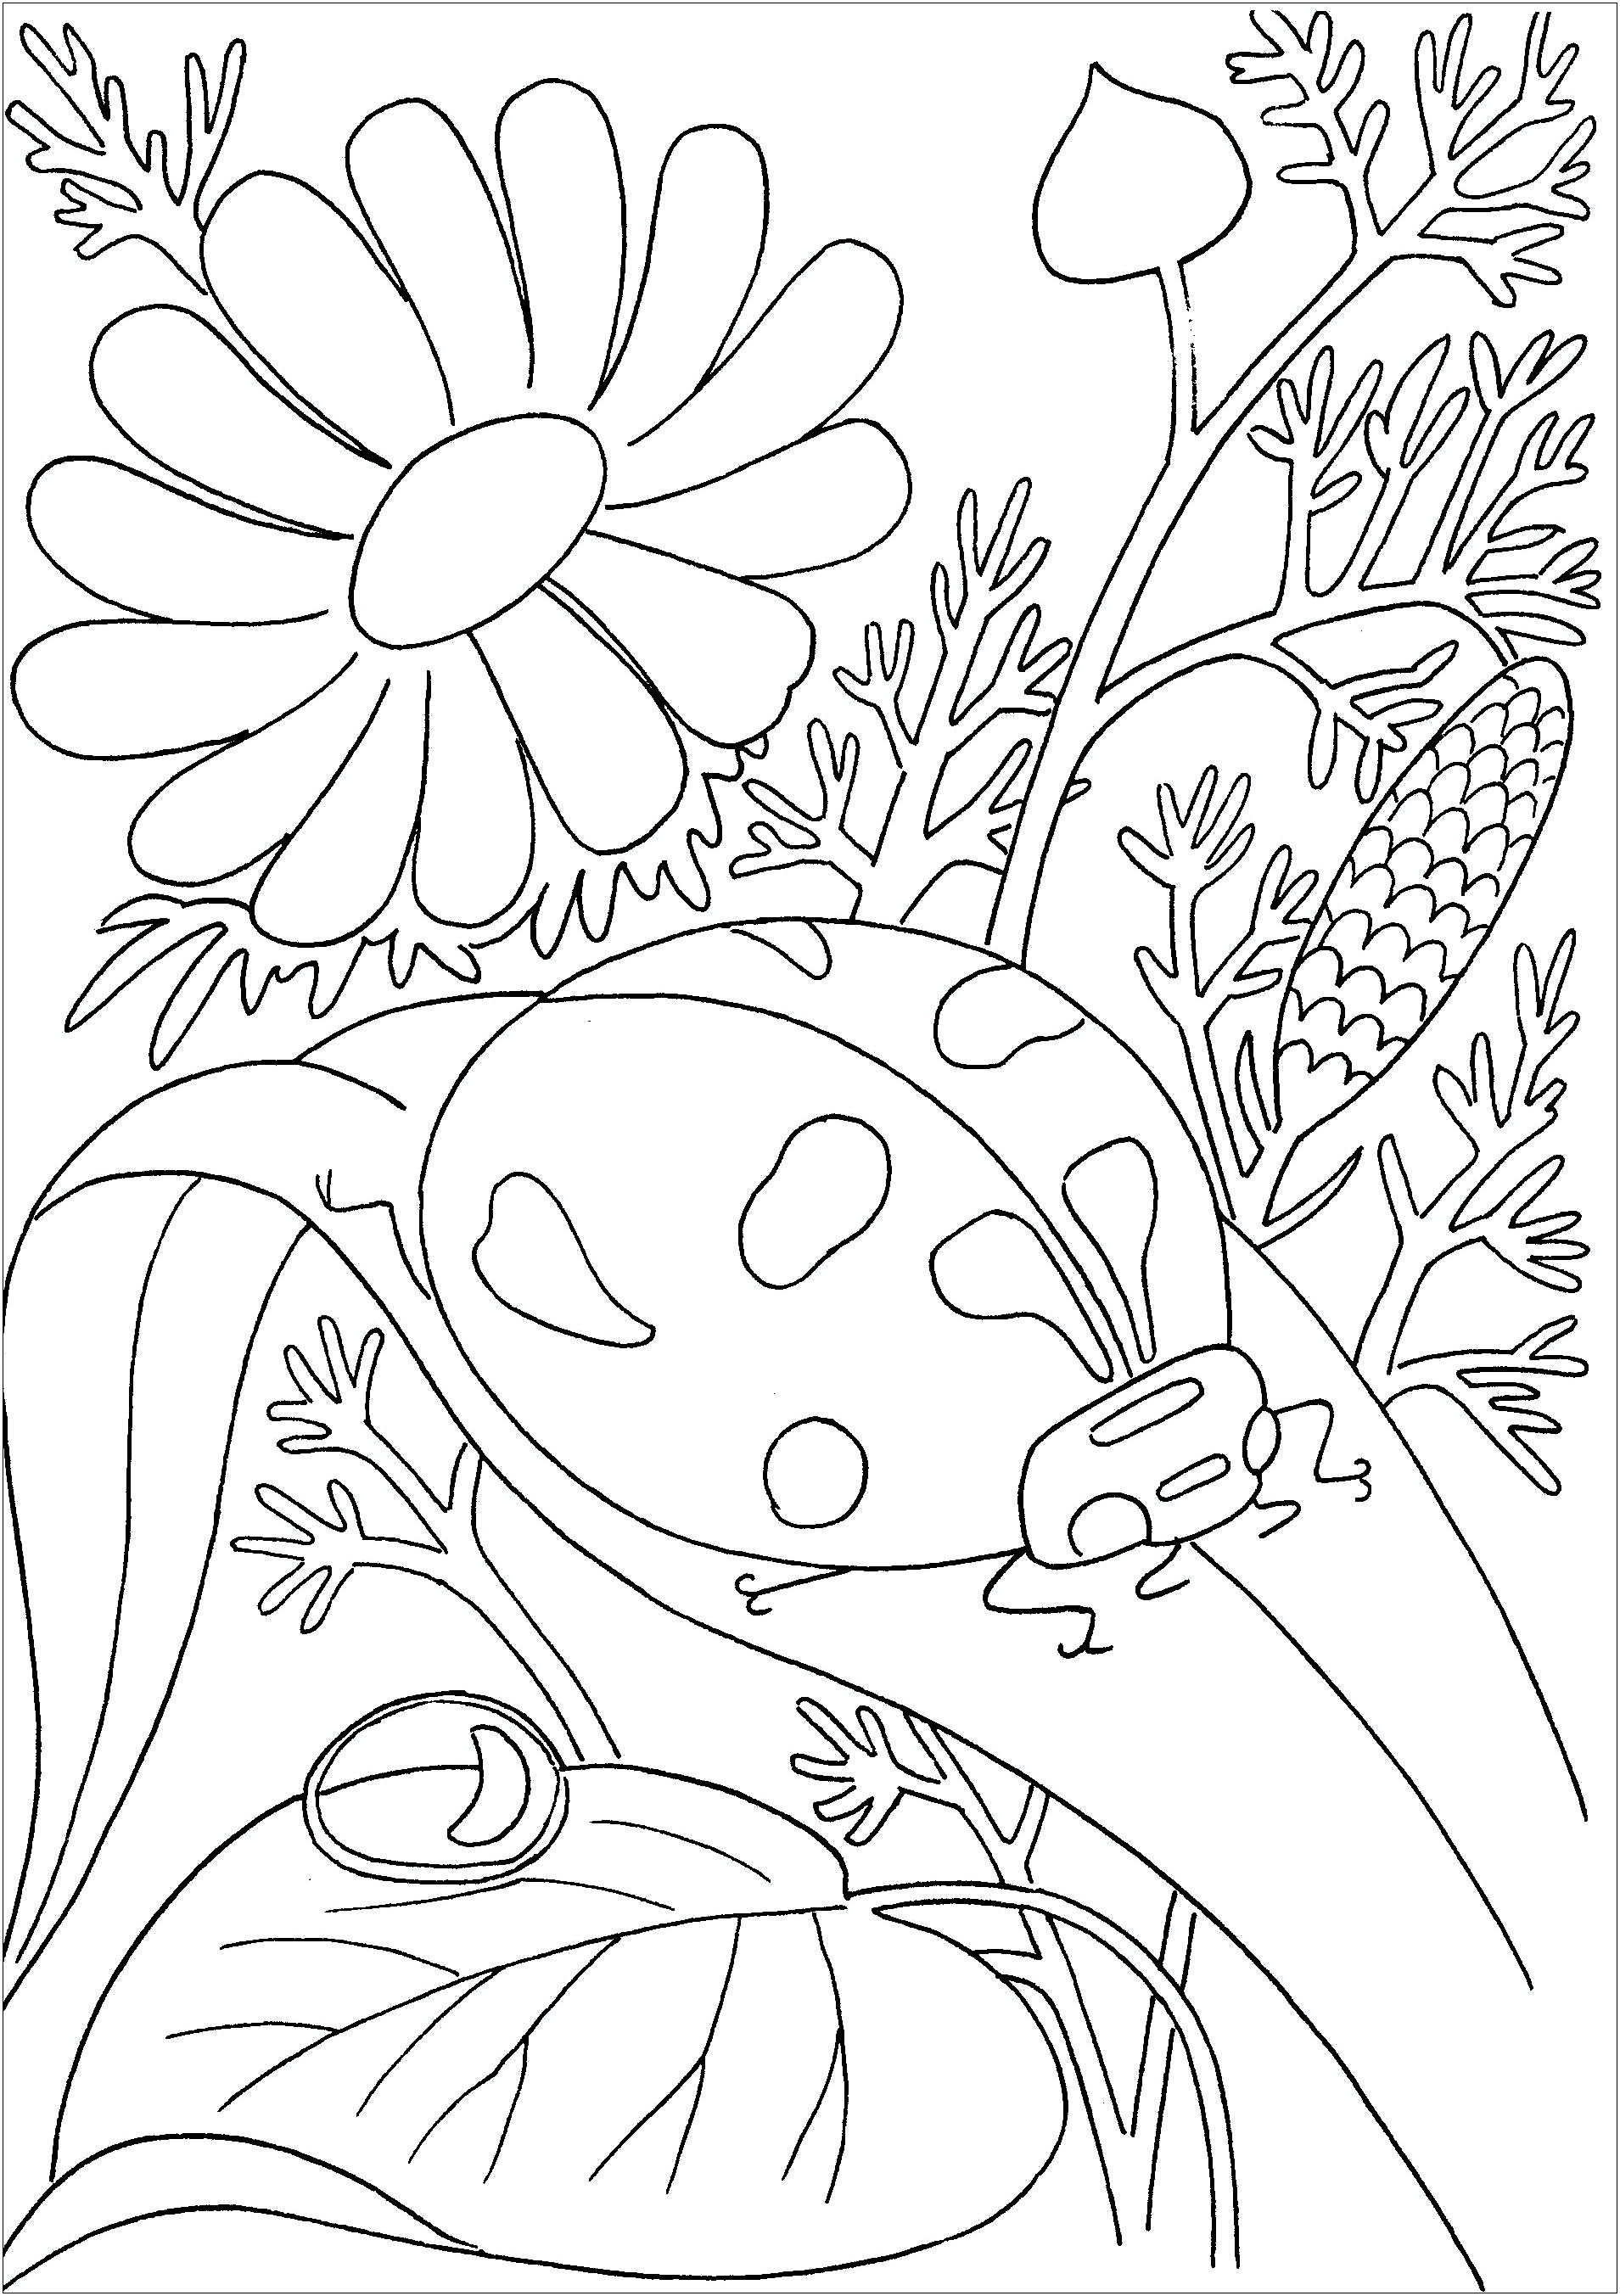 insect coloring pictures insects for children insects kids coloring pages pictures coloring insect